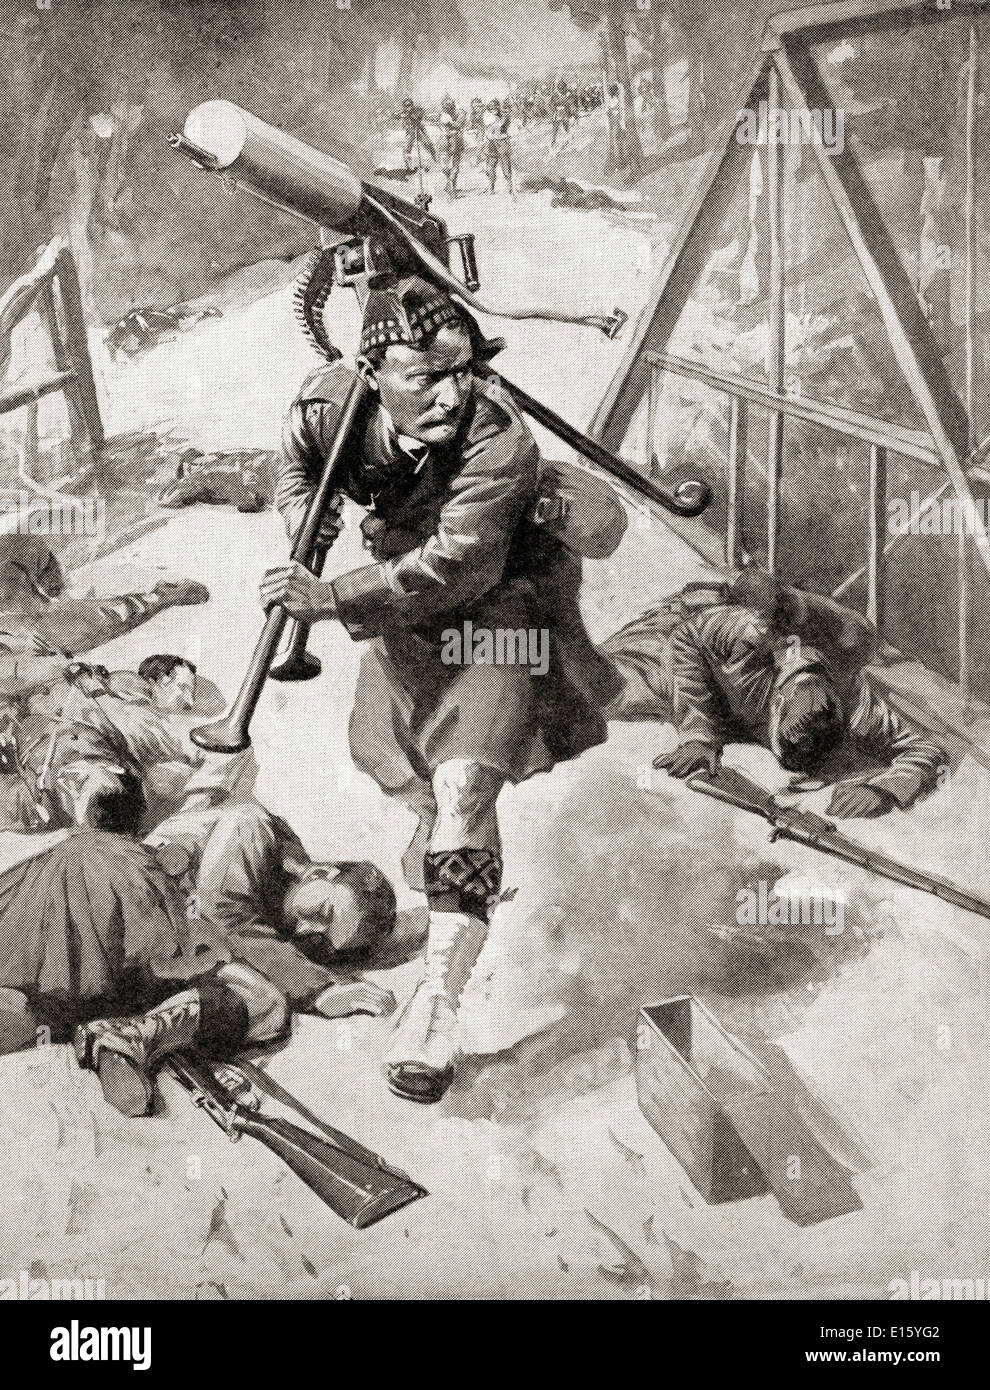 A brave soldier from the Highlander regiment steals a Maxim gun from the Germany enemy during WWI. - Stock Image